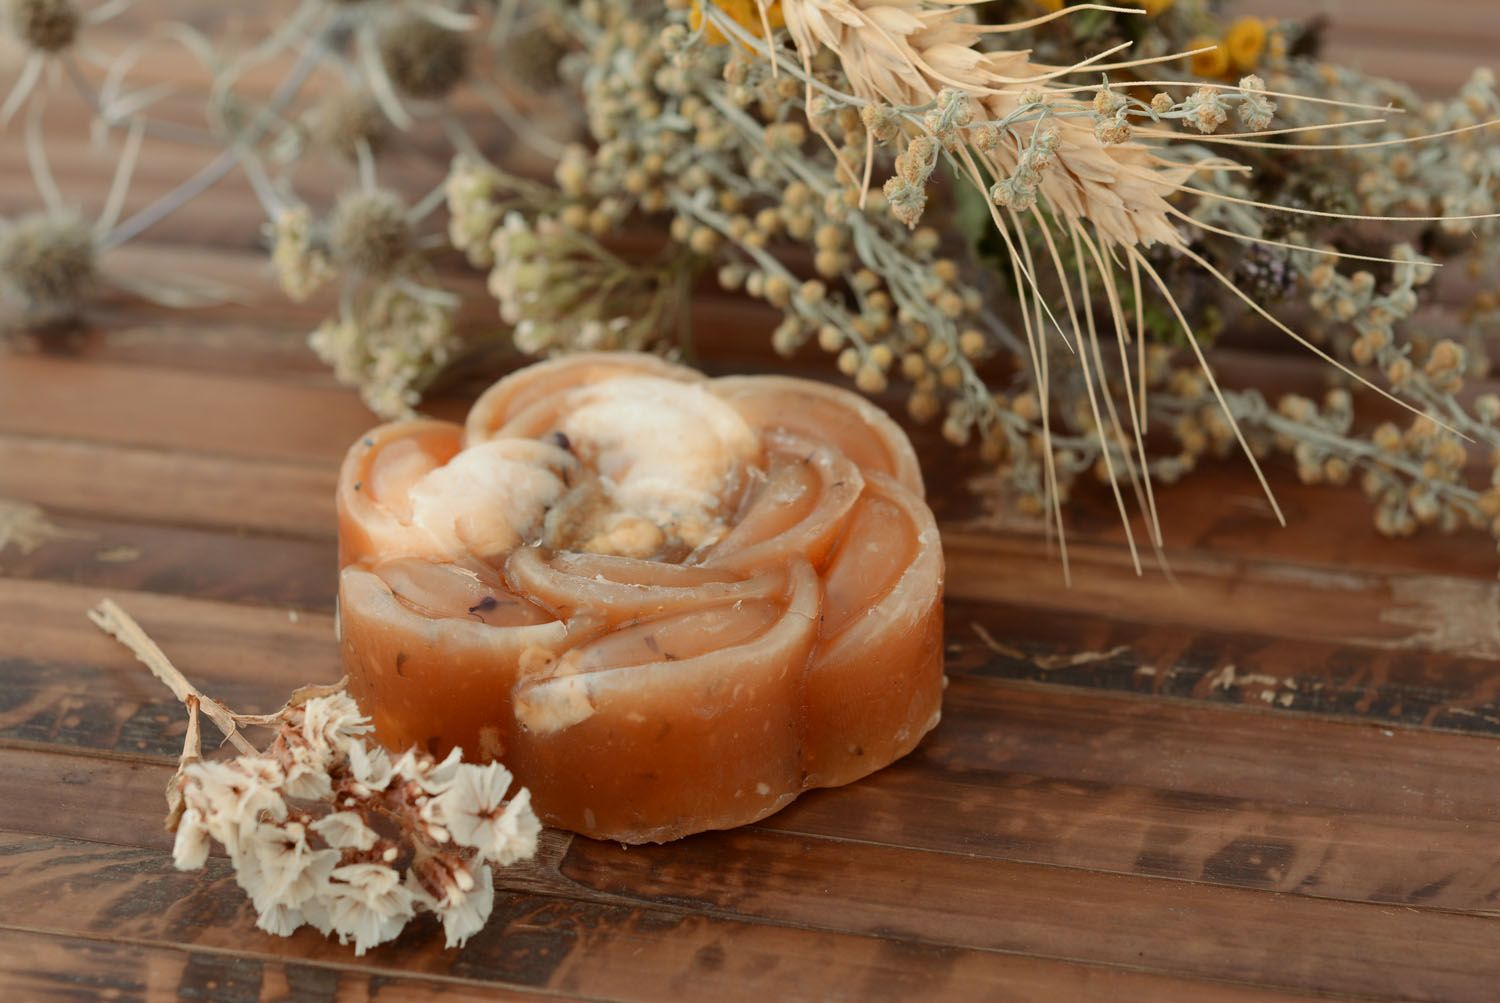 Natural flower-shaped soap photo 1